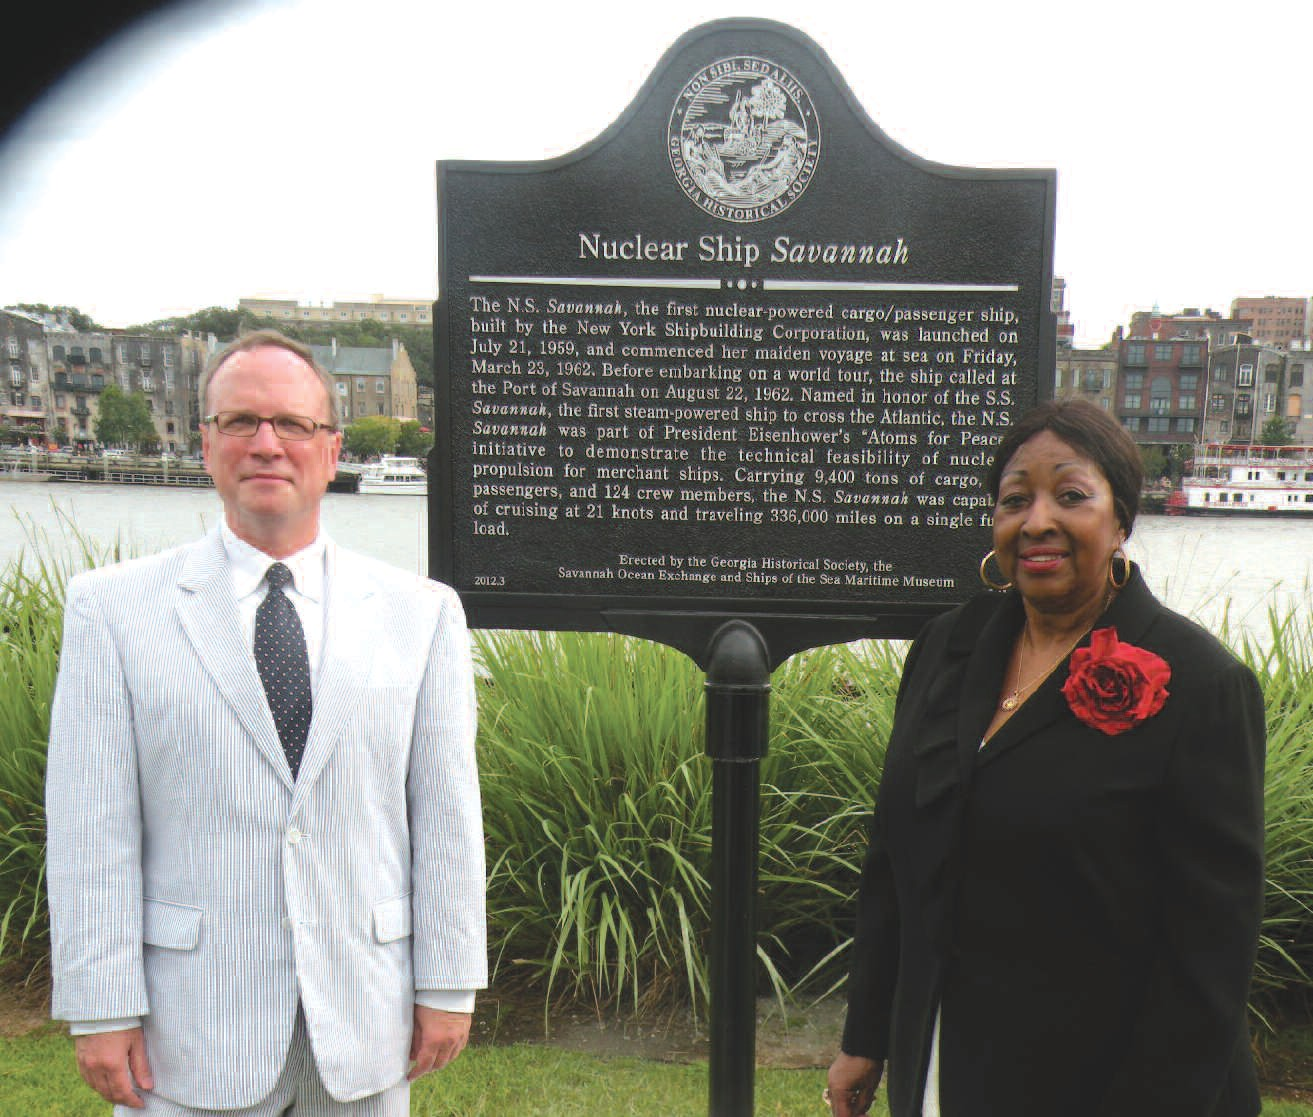 Dr. W. Todd Groce, President & CEO, Georgia Historical Society along with Mayor Edna Jackson at the dedication and unveiling of the historical marker for the Nuclear Ship Savannah.